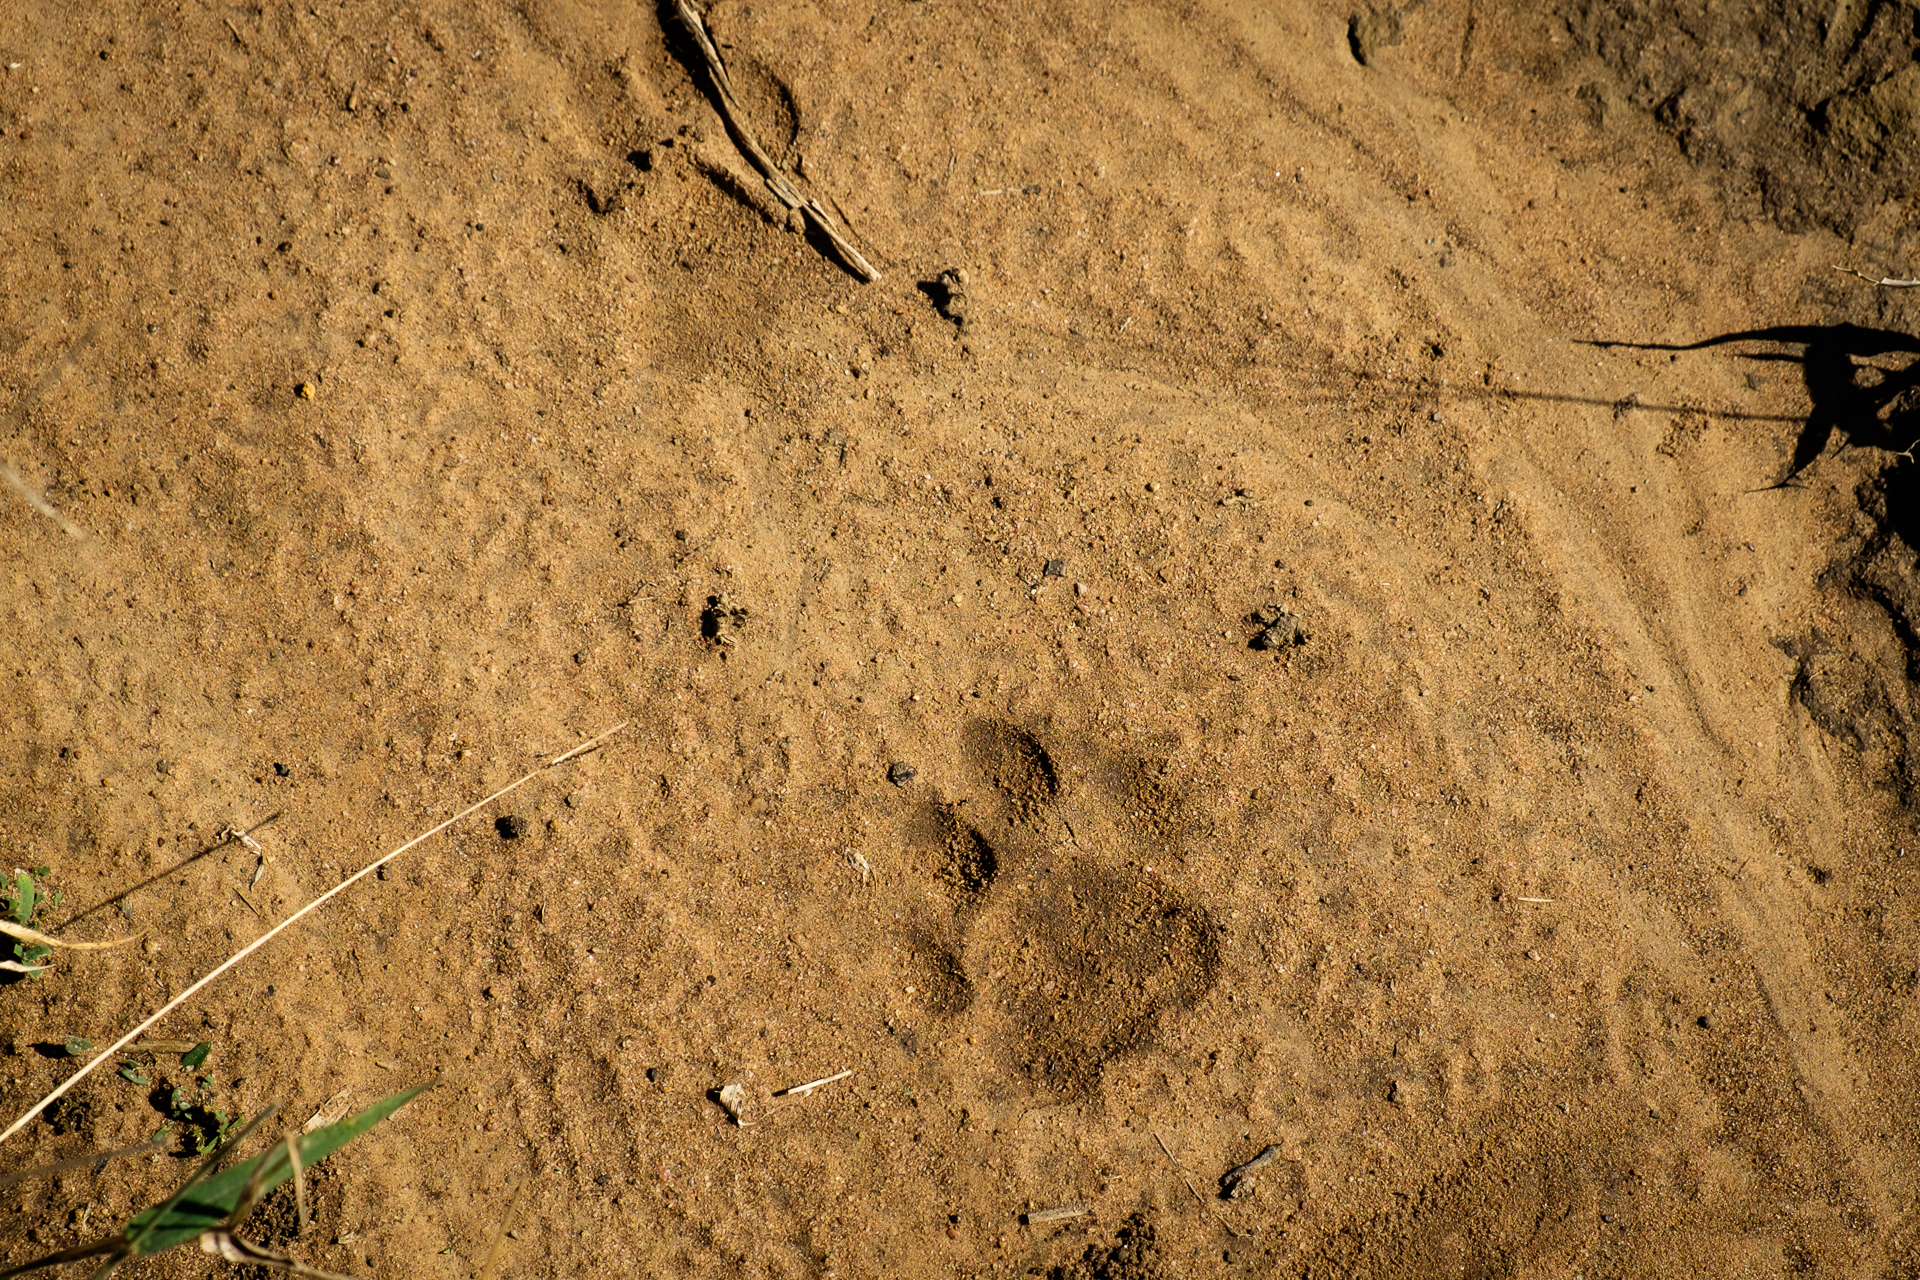 Identifying Big Cat Tracks in Africa